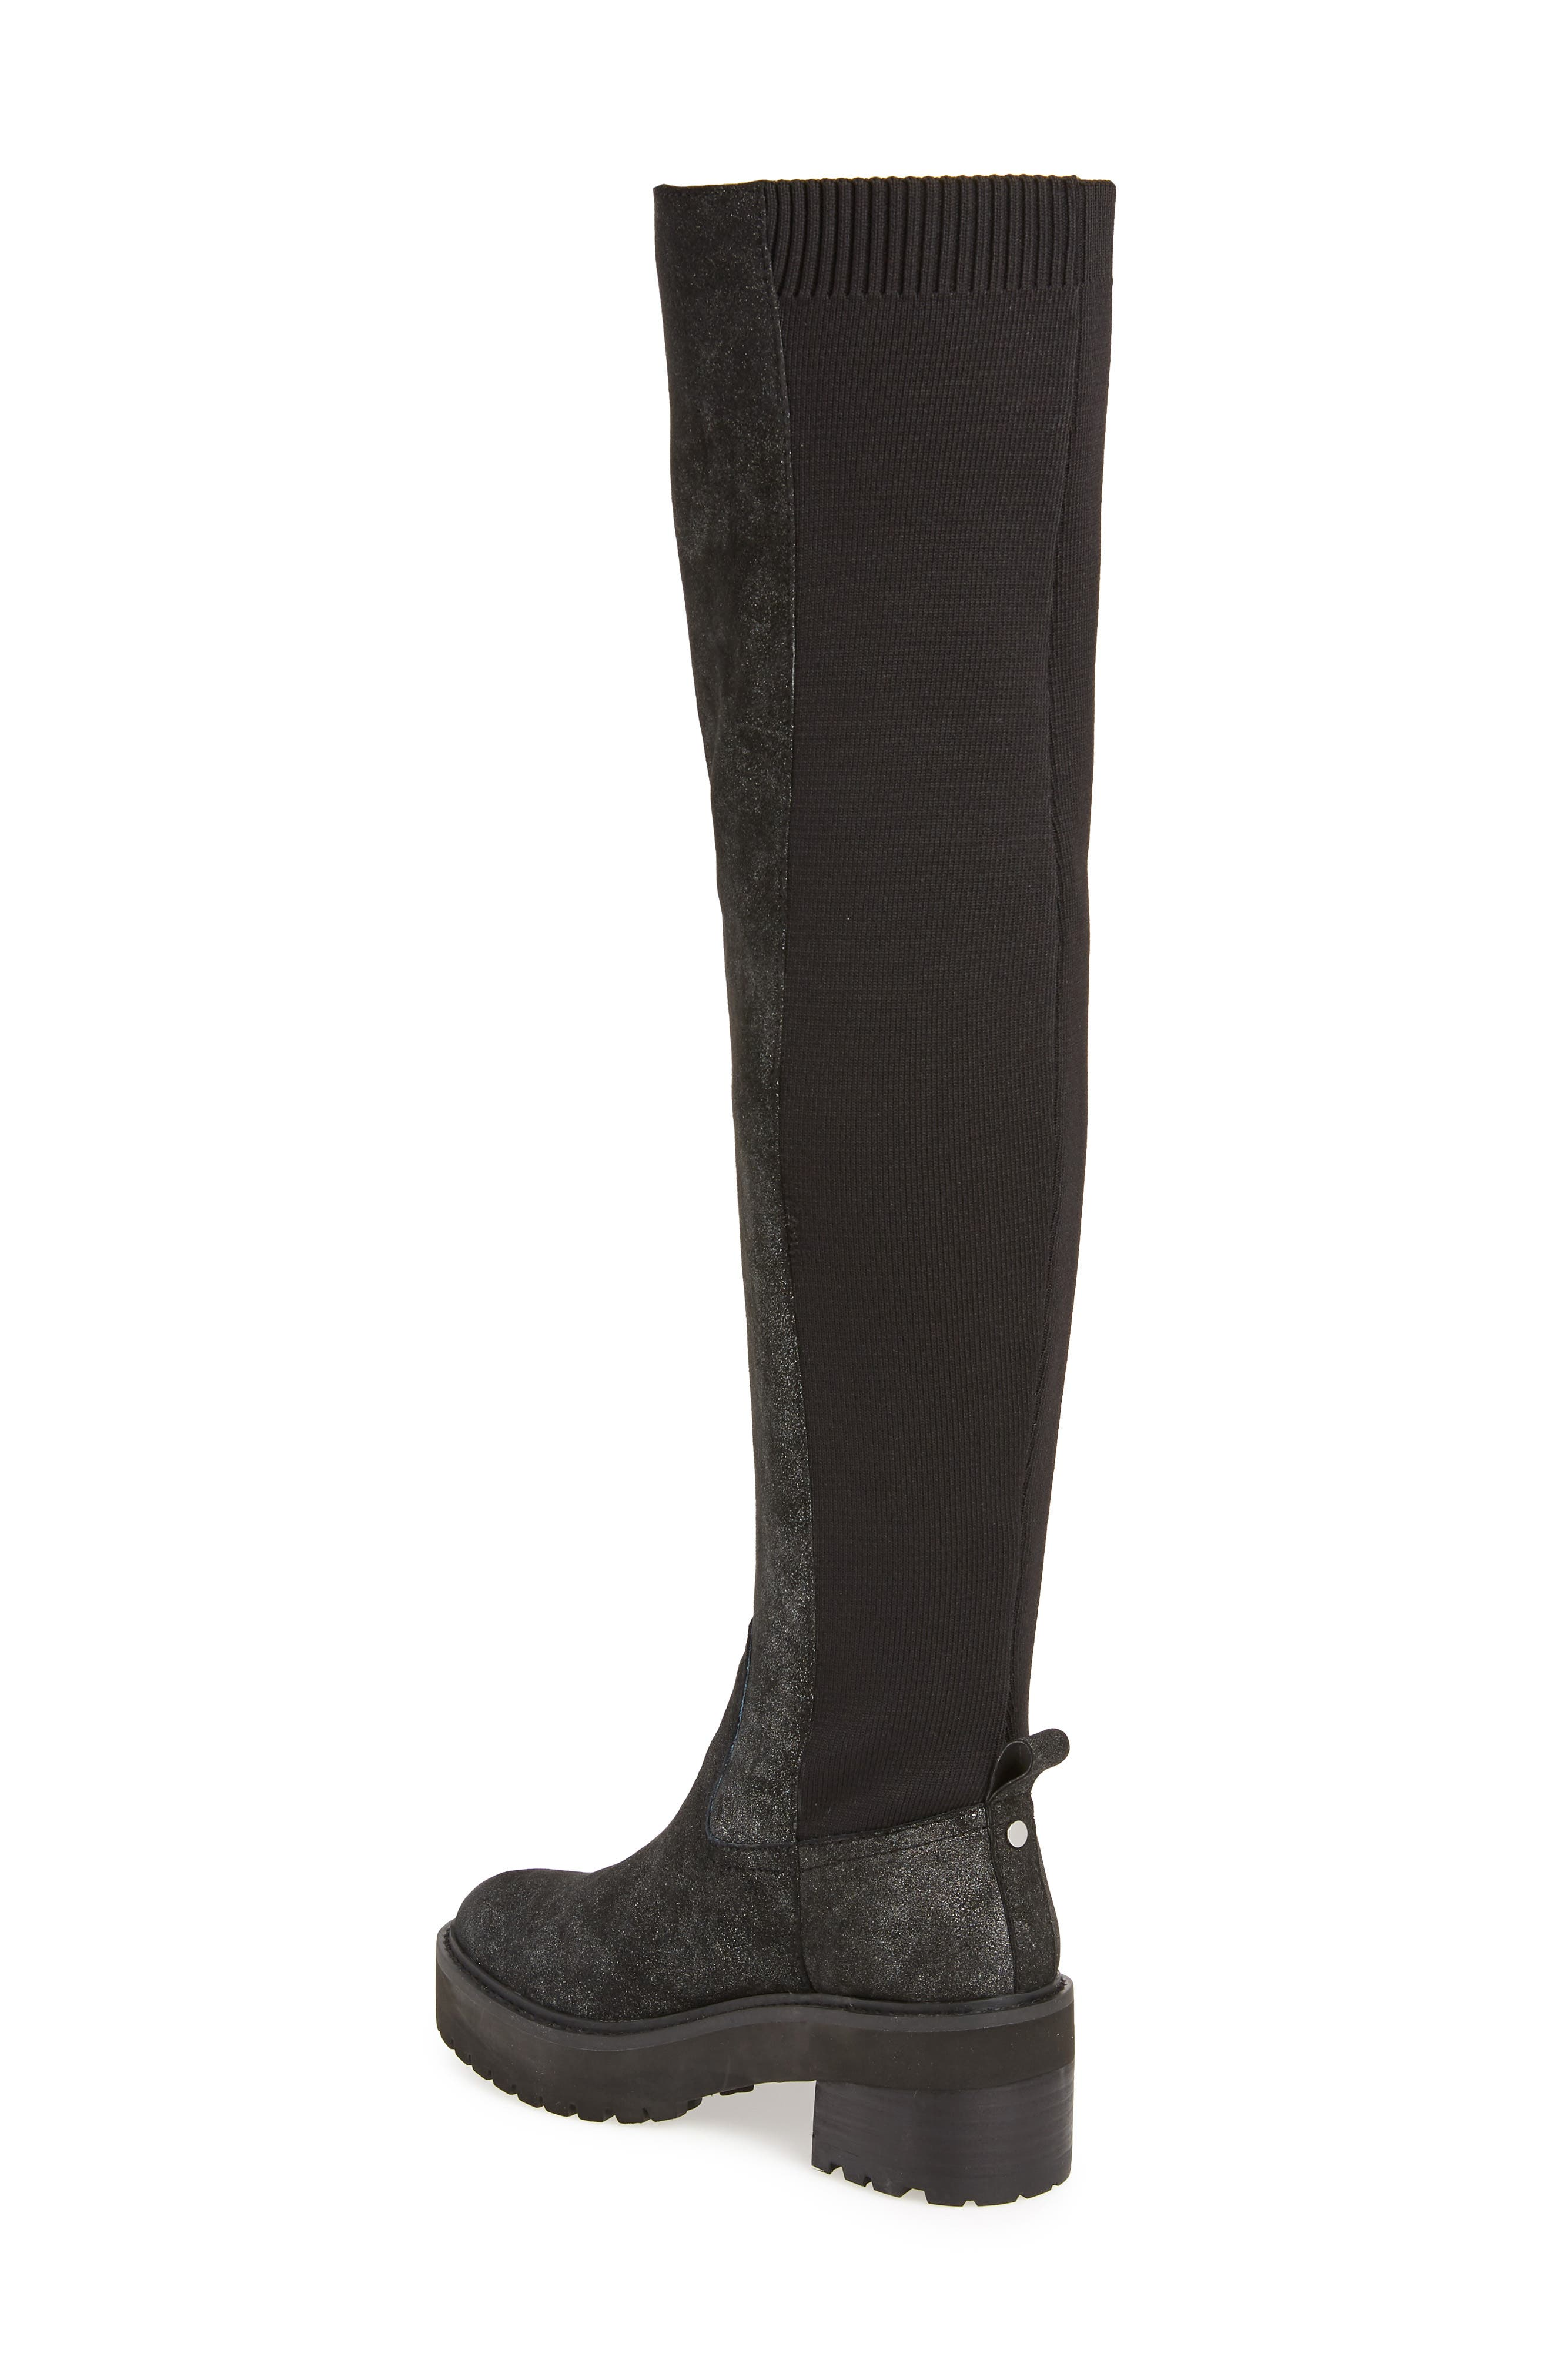 Lindy Over the Knee Boot,                             Alternate thumbnail 2, color,                             001